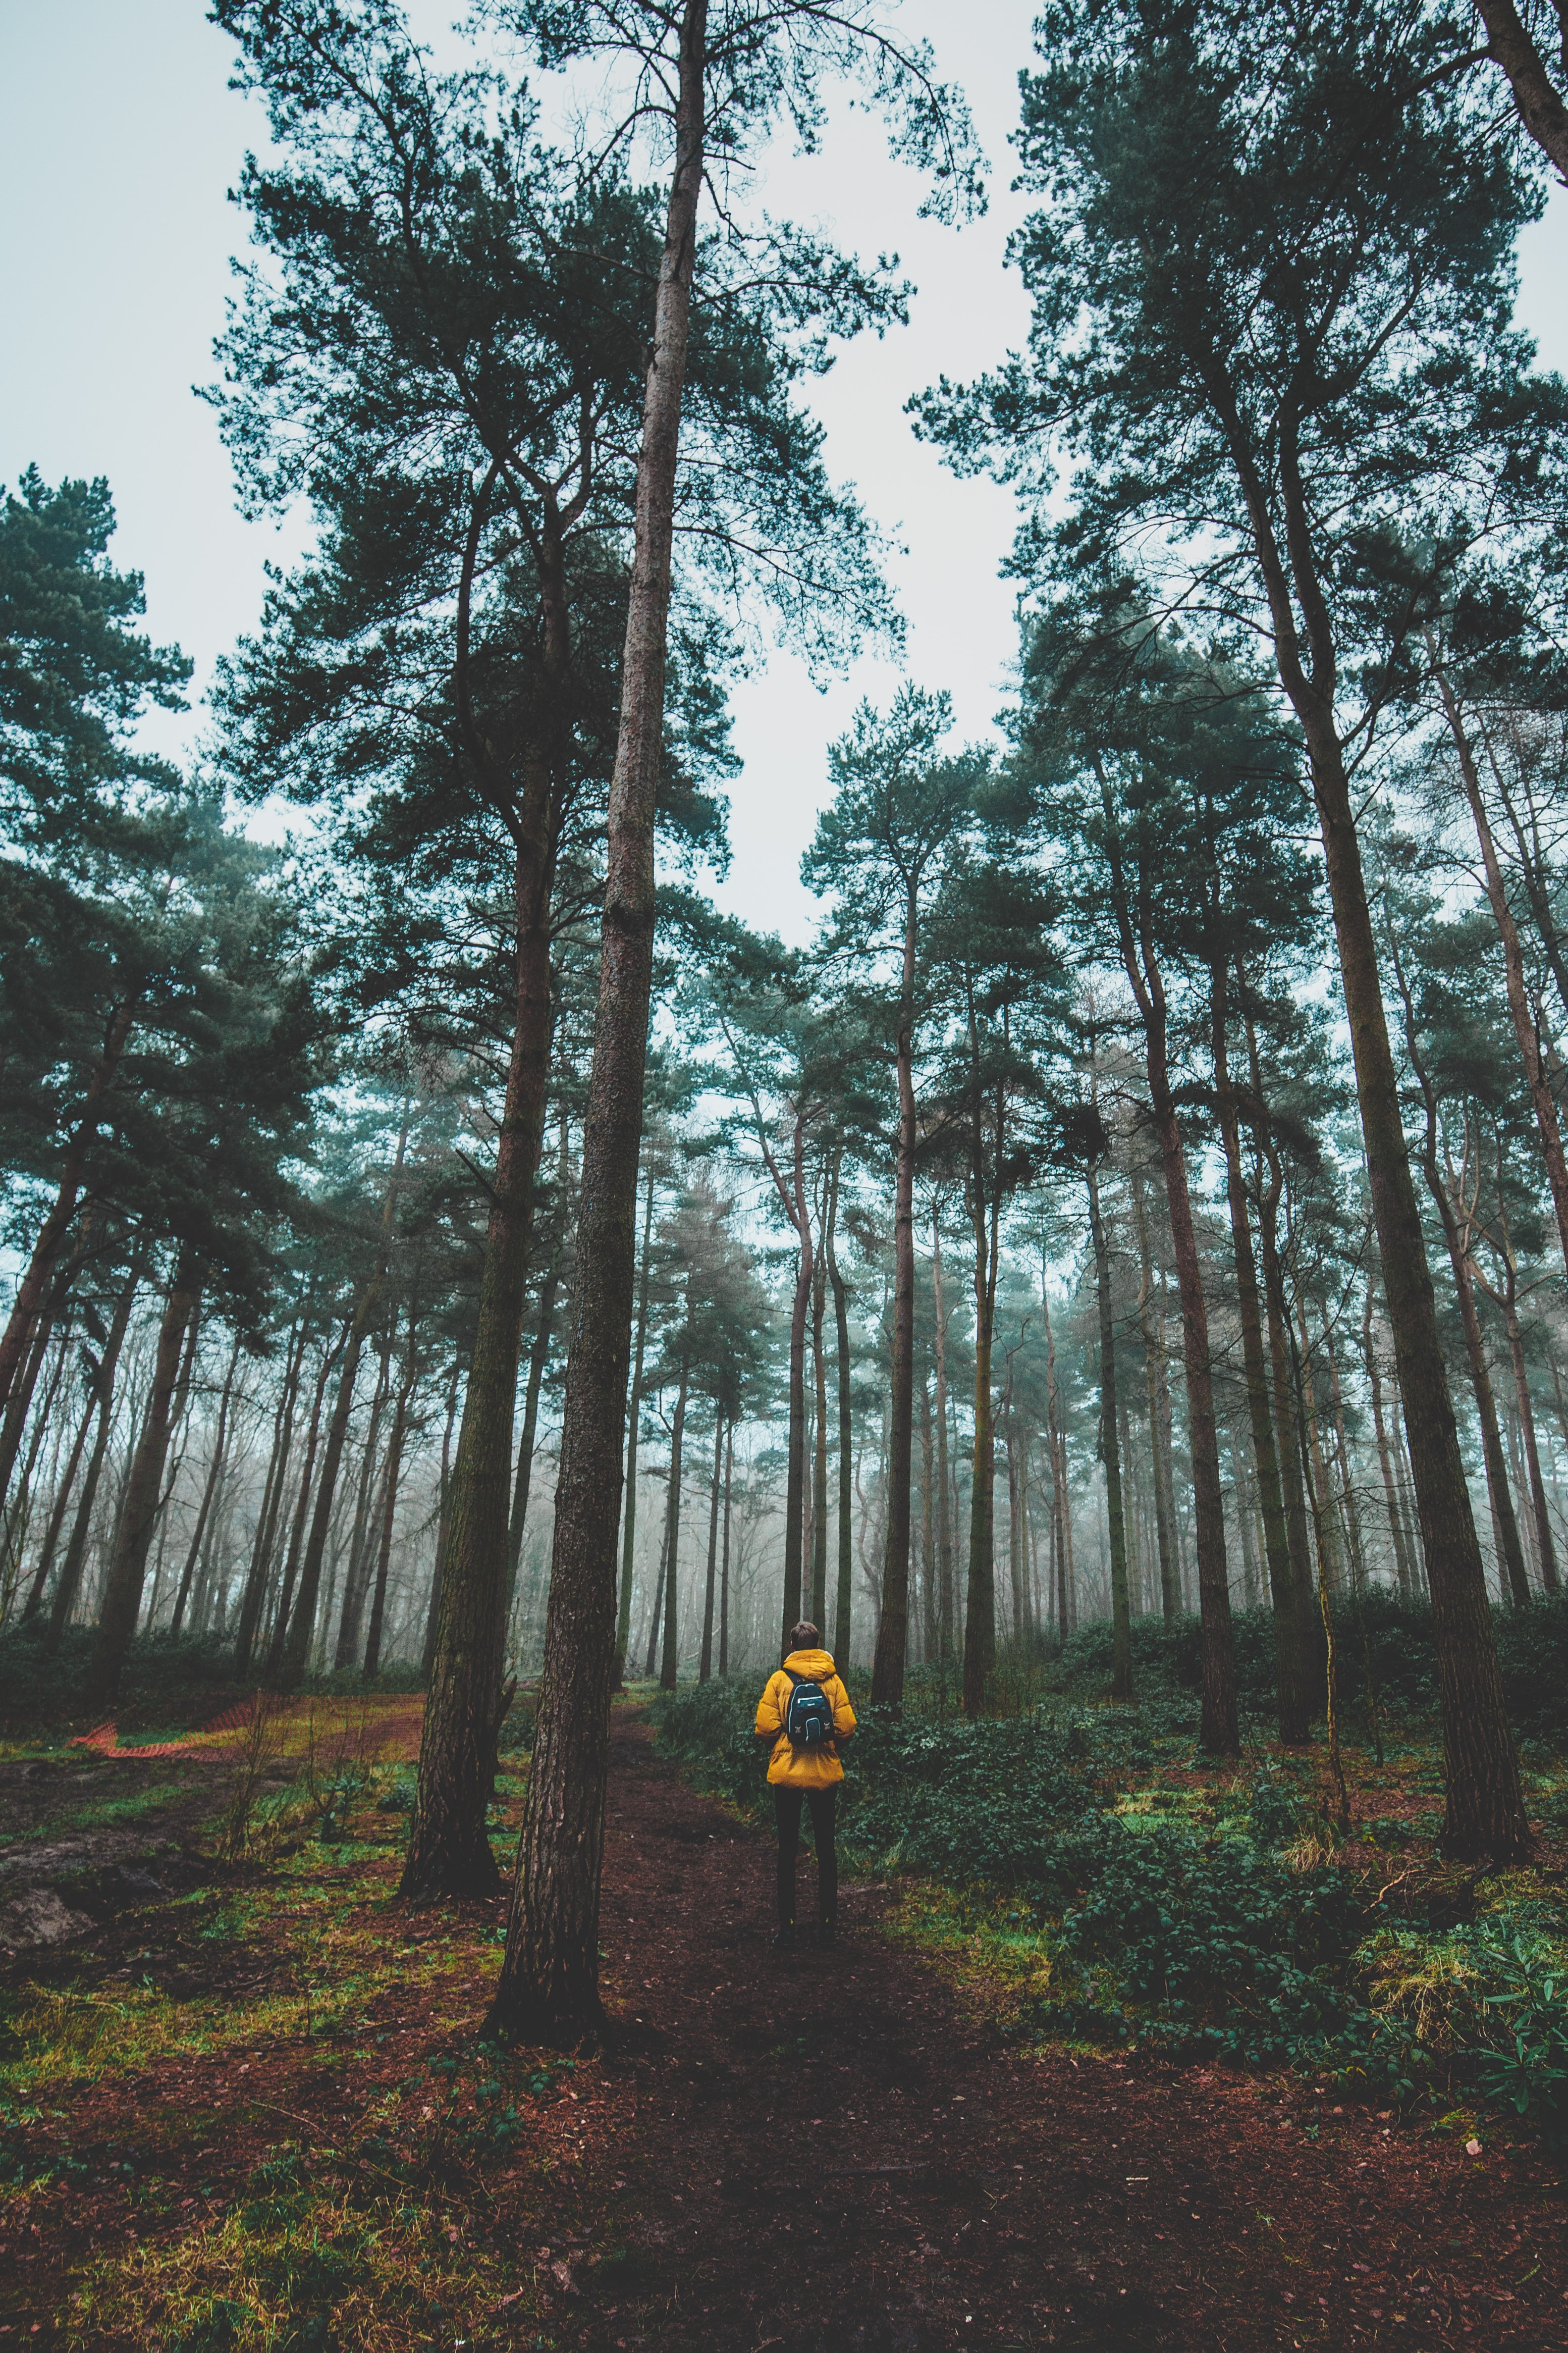 man wearing yellow jacket standing in forest